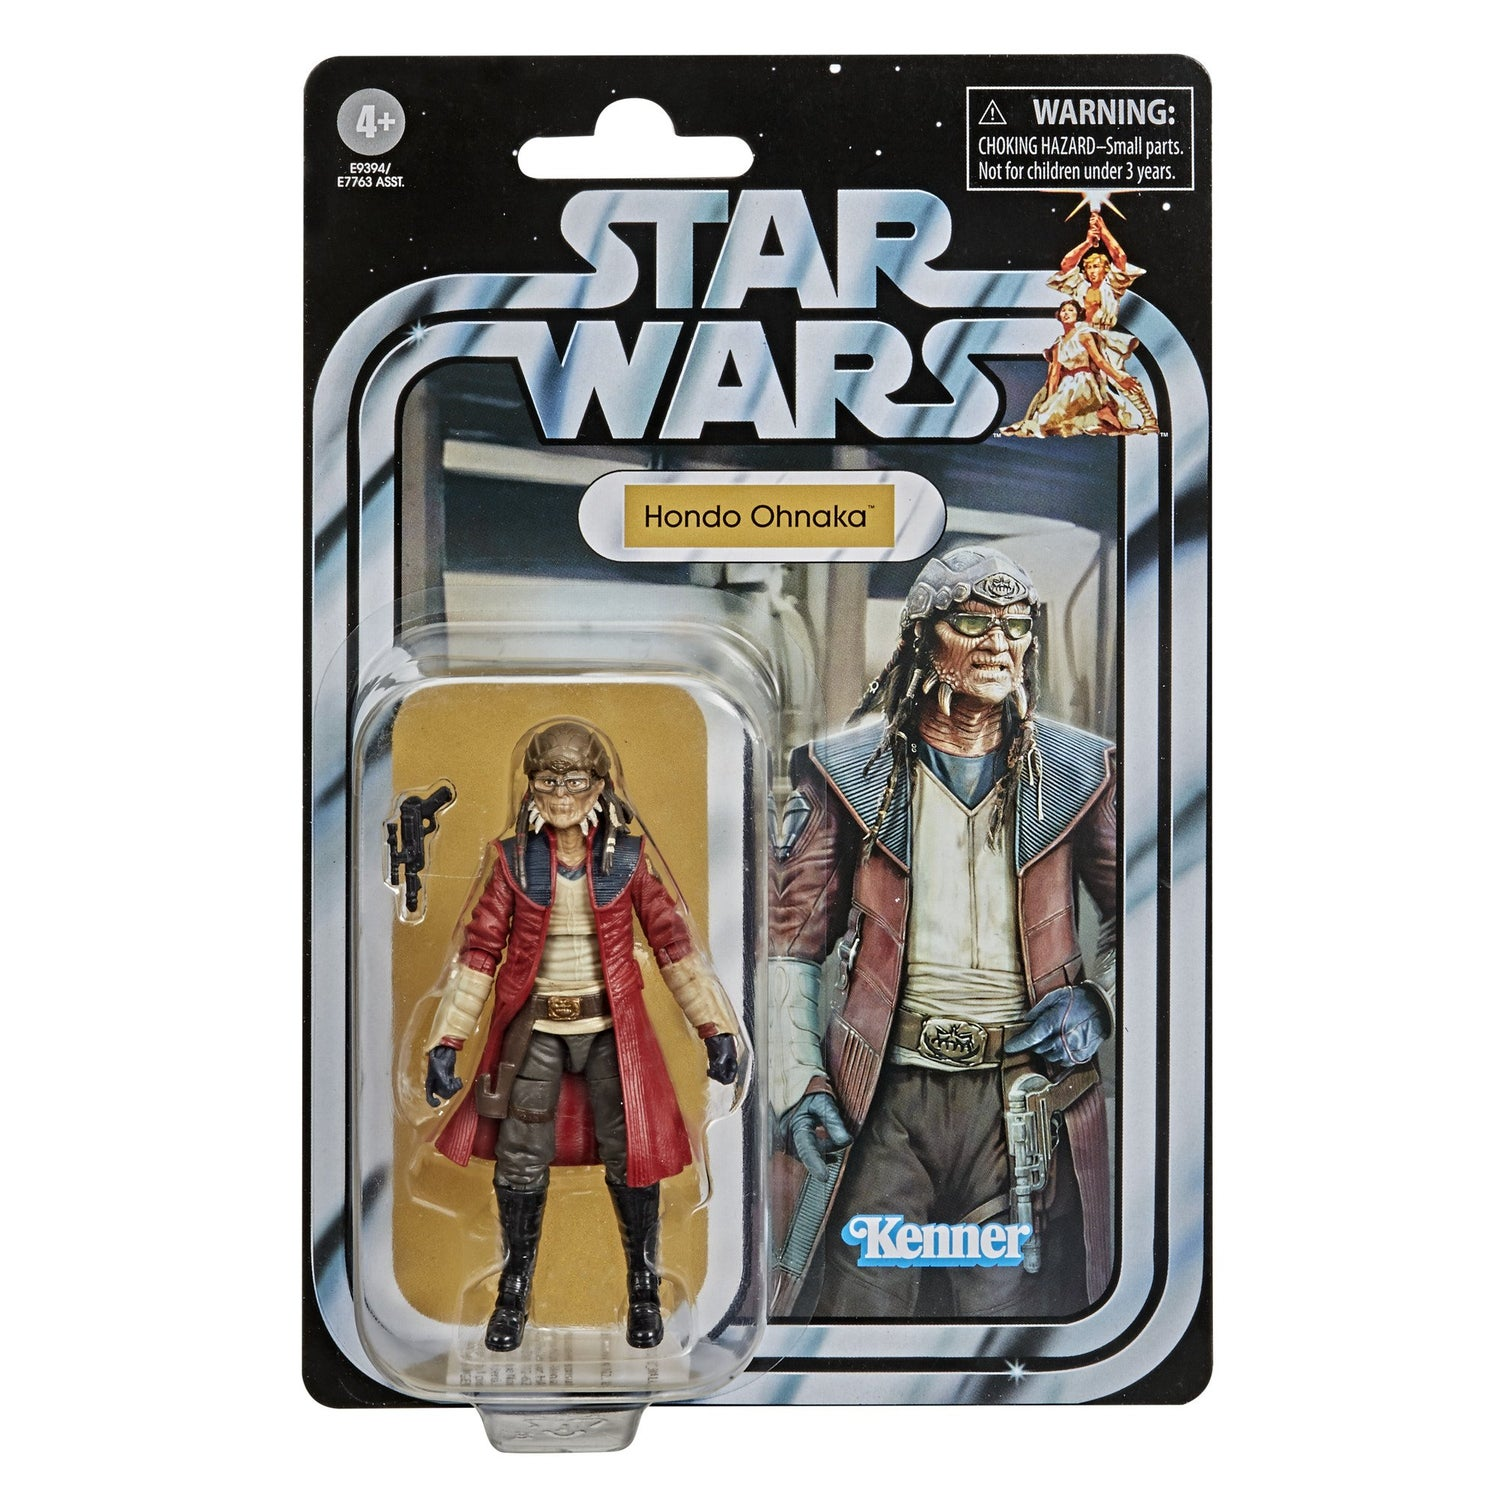 Image of Star Wars the vintage collection Hondo Ohnaka